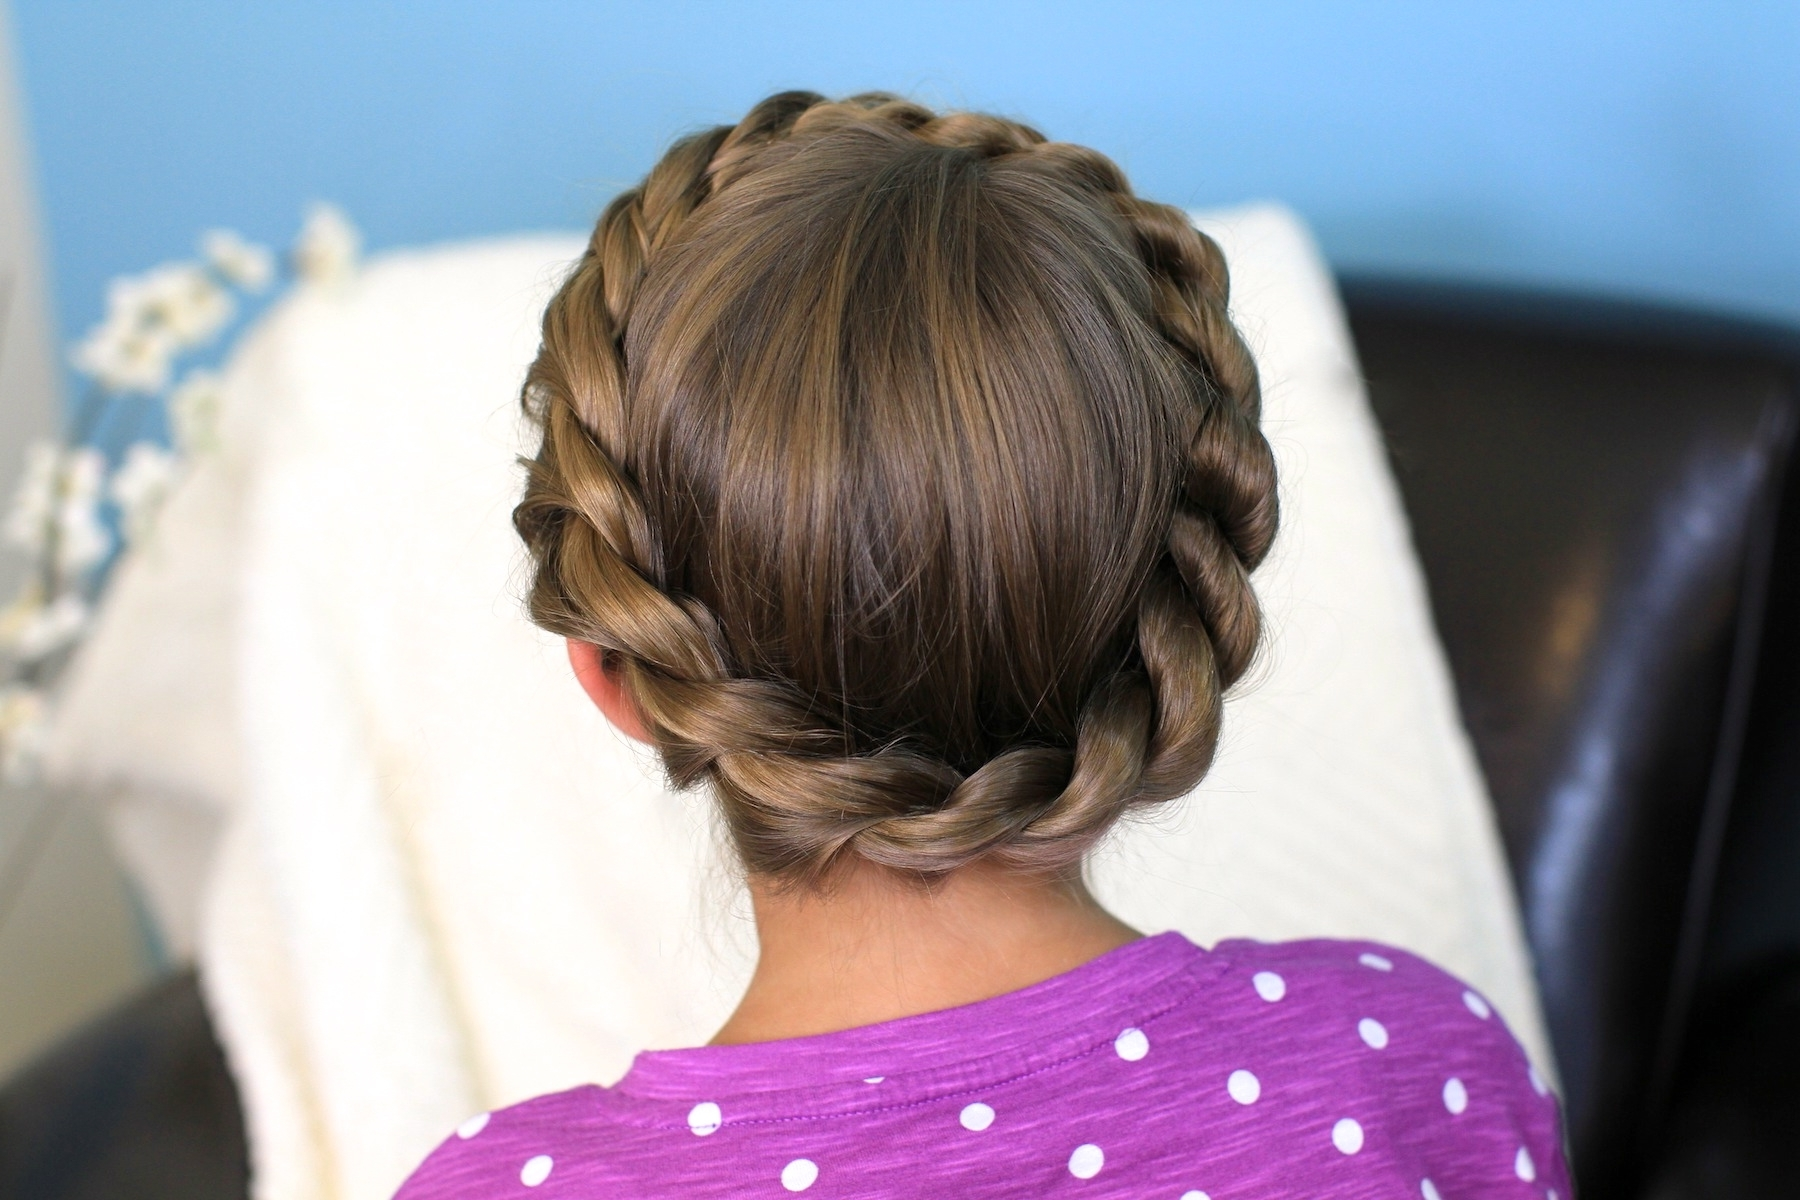 Updo Hairstyles Crown Rope Twist Braid Updo Hairstyles Cute Girls Inside Cute Girls Updo Hairstyles (View 10 of 15)